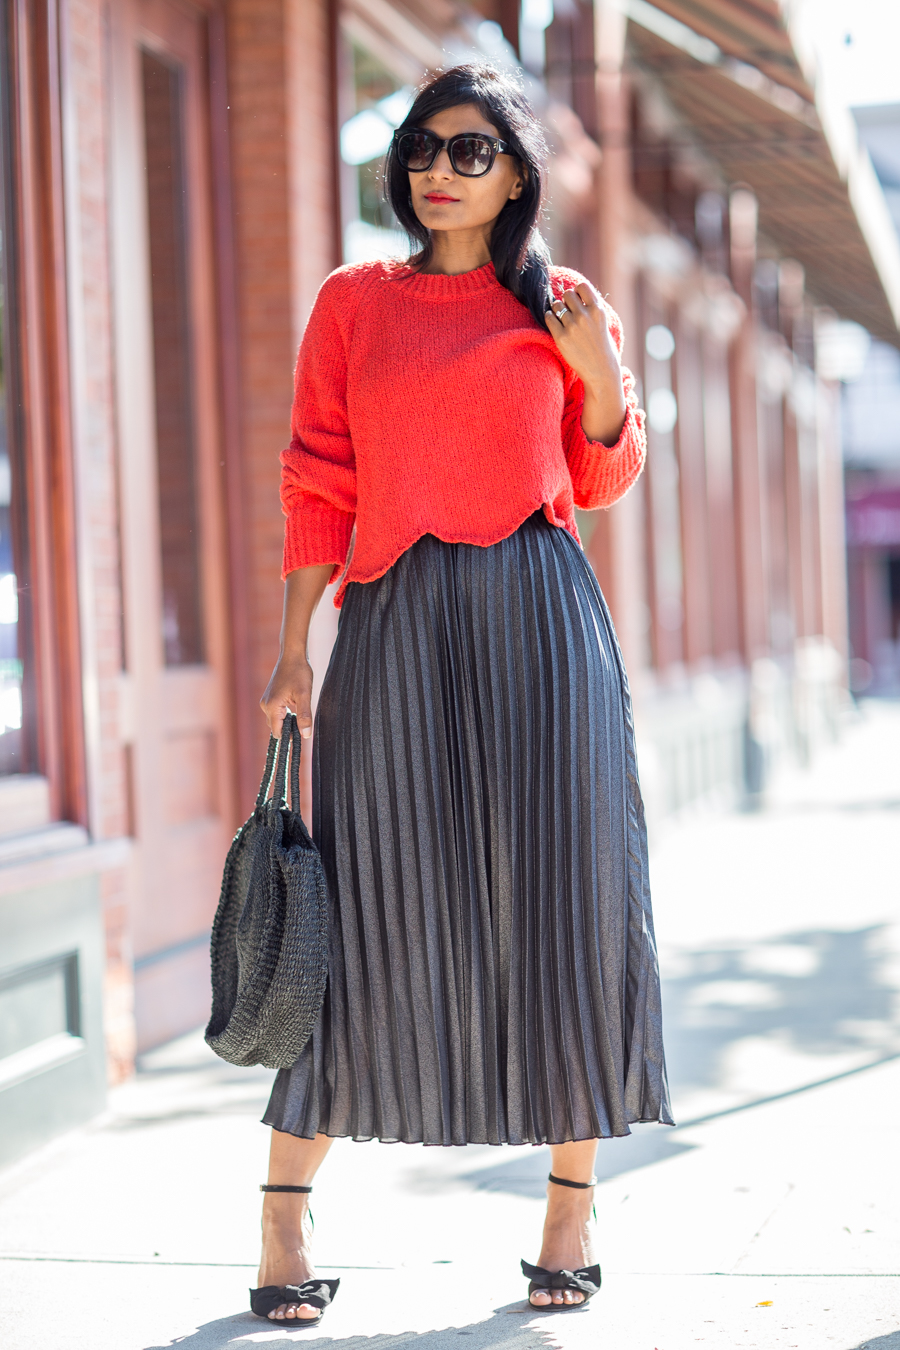 metallics, metallic skirt, style trends, fall style trends, wardrobe essentials, petite fashion, affordable style, styling tips, tips from a personal stylist, affordable style, fall fashion, red sweater, h&m, ticao